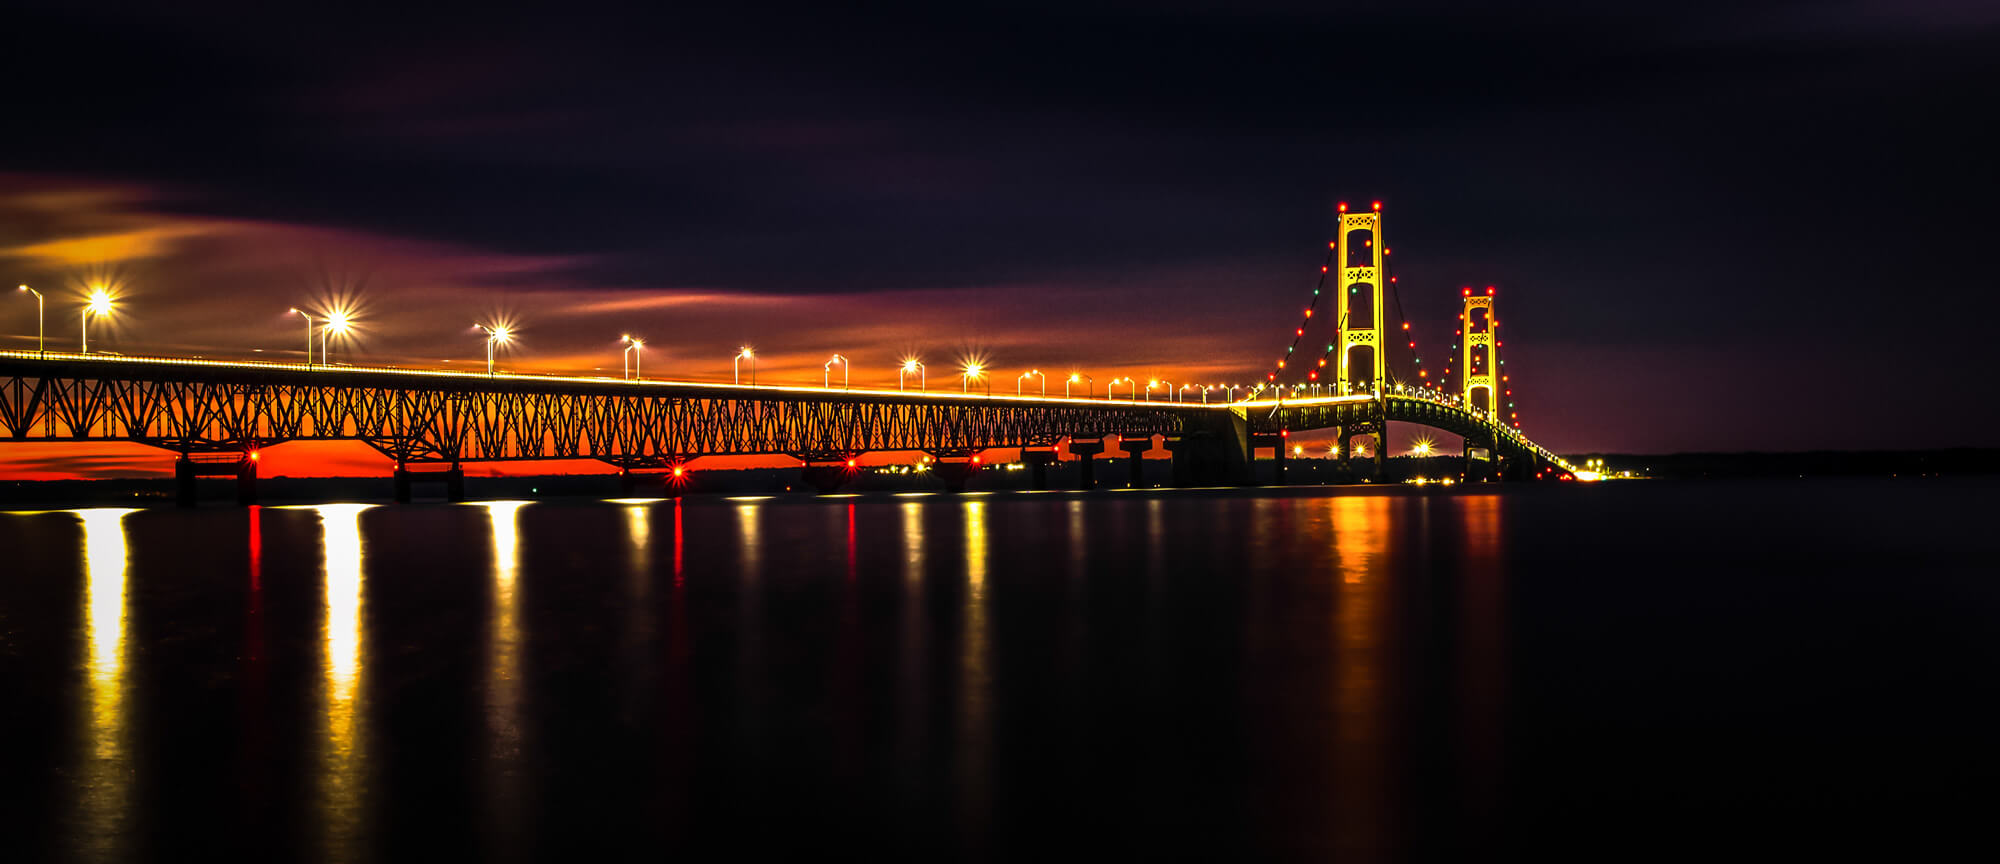 Michigan Mackinaw Bridge